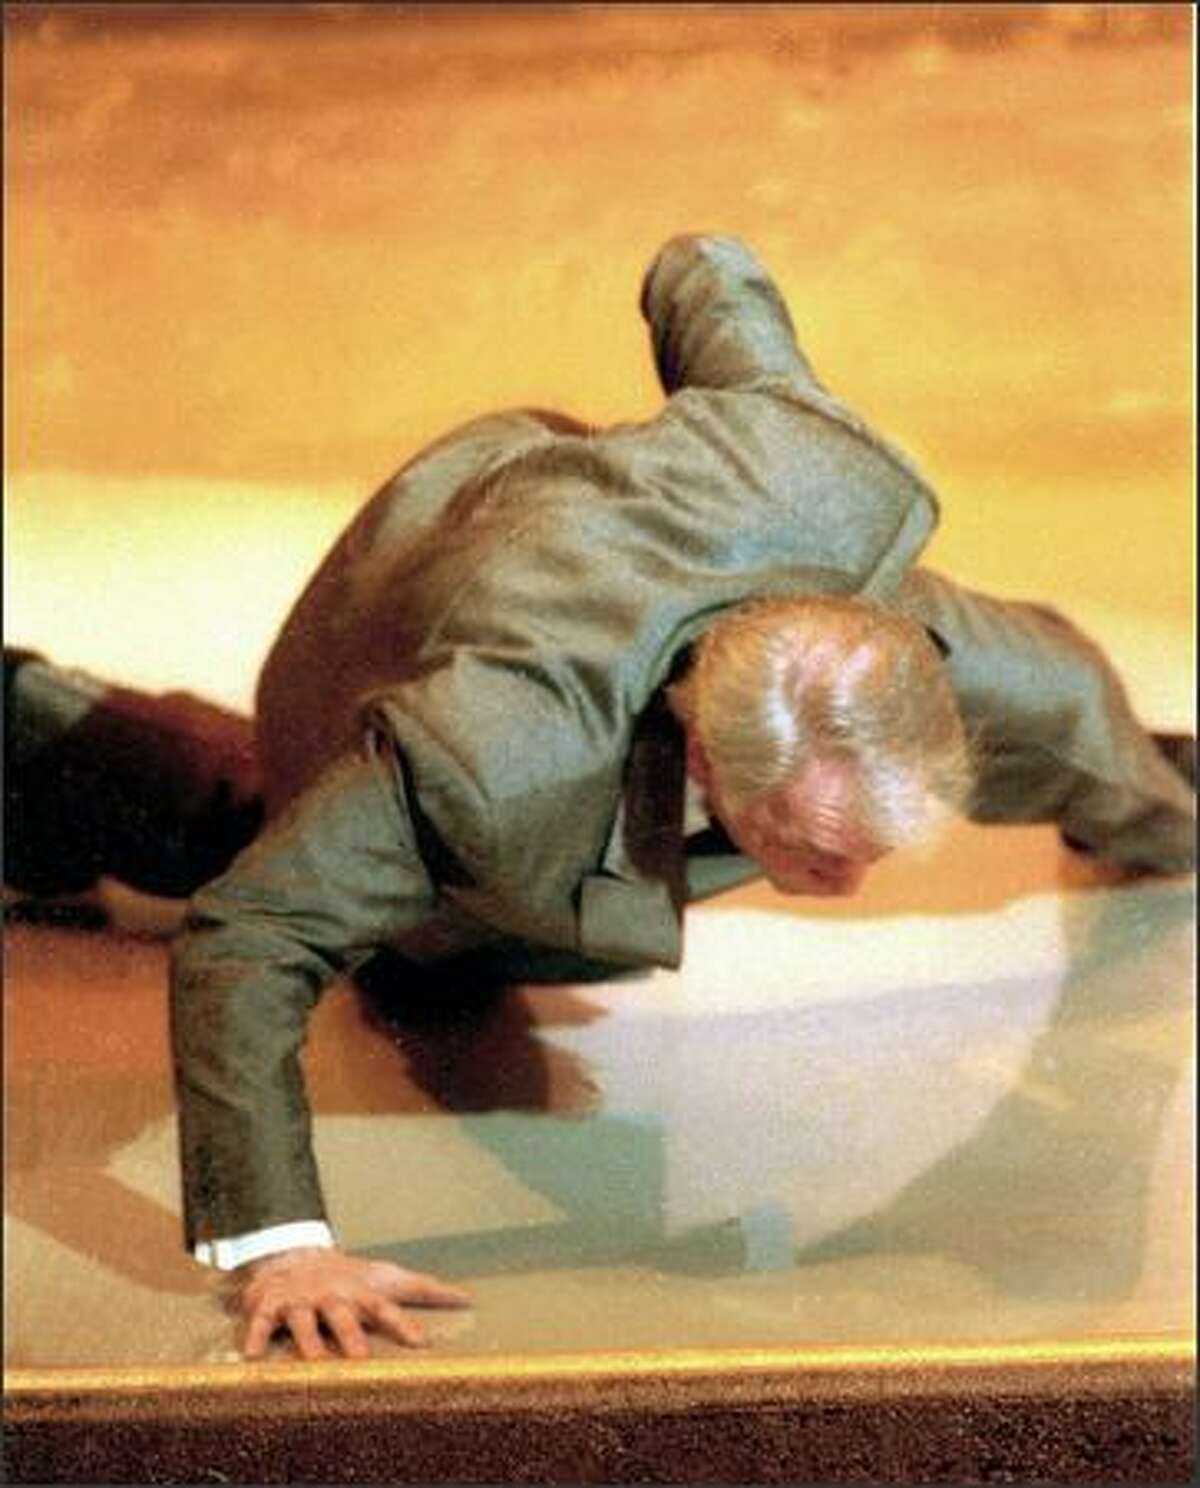 At the Oscars this year, don't expect to see stunts like Jack Palance's one-hand push-ups, which he did after winning a best supporting actor award for